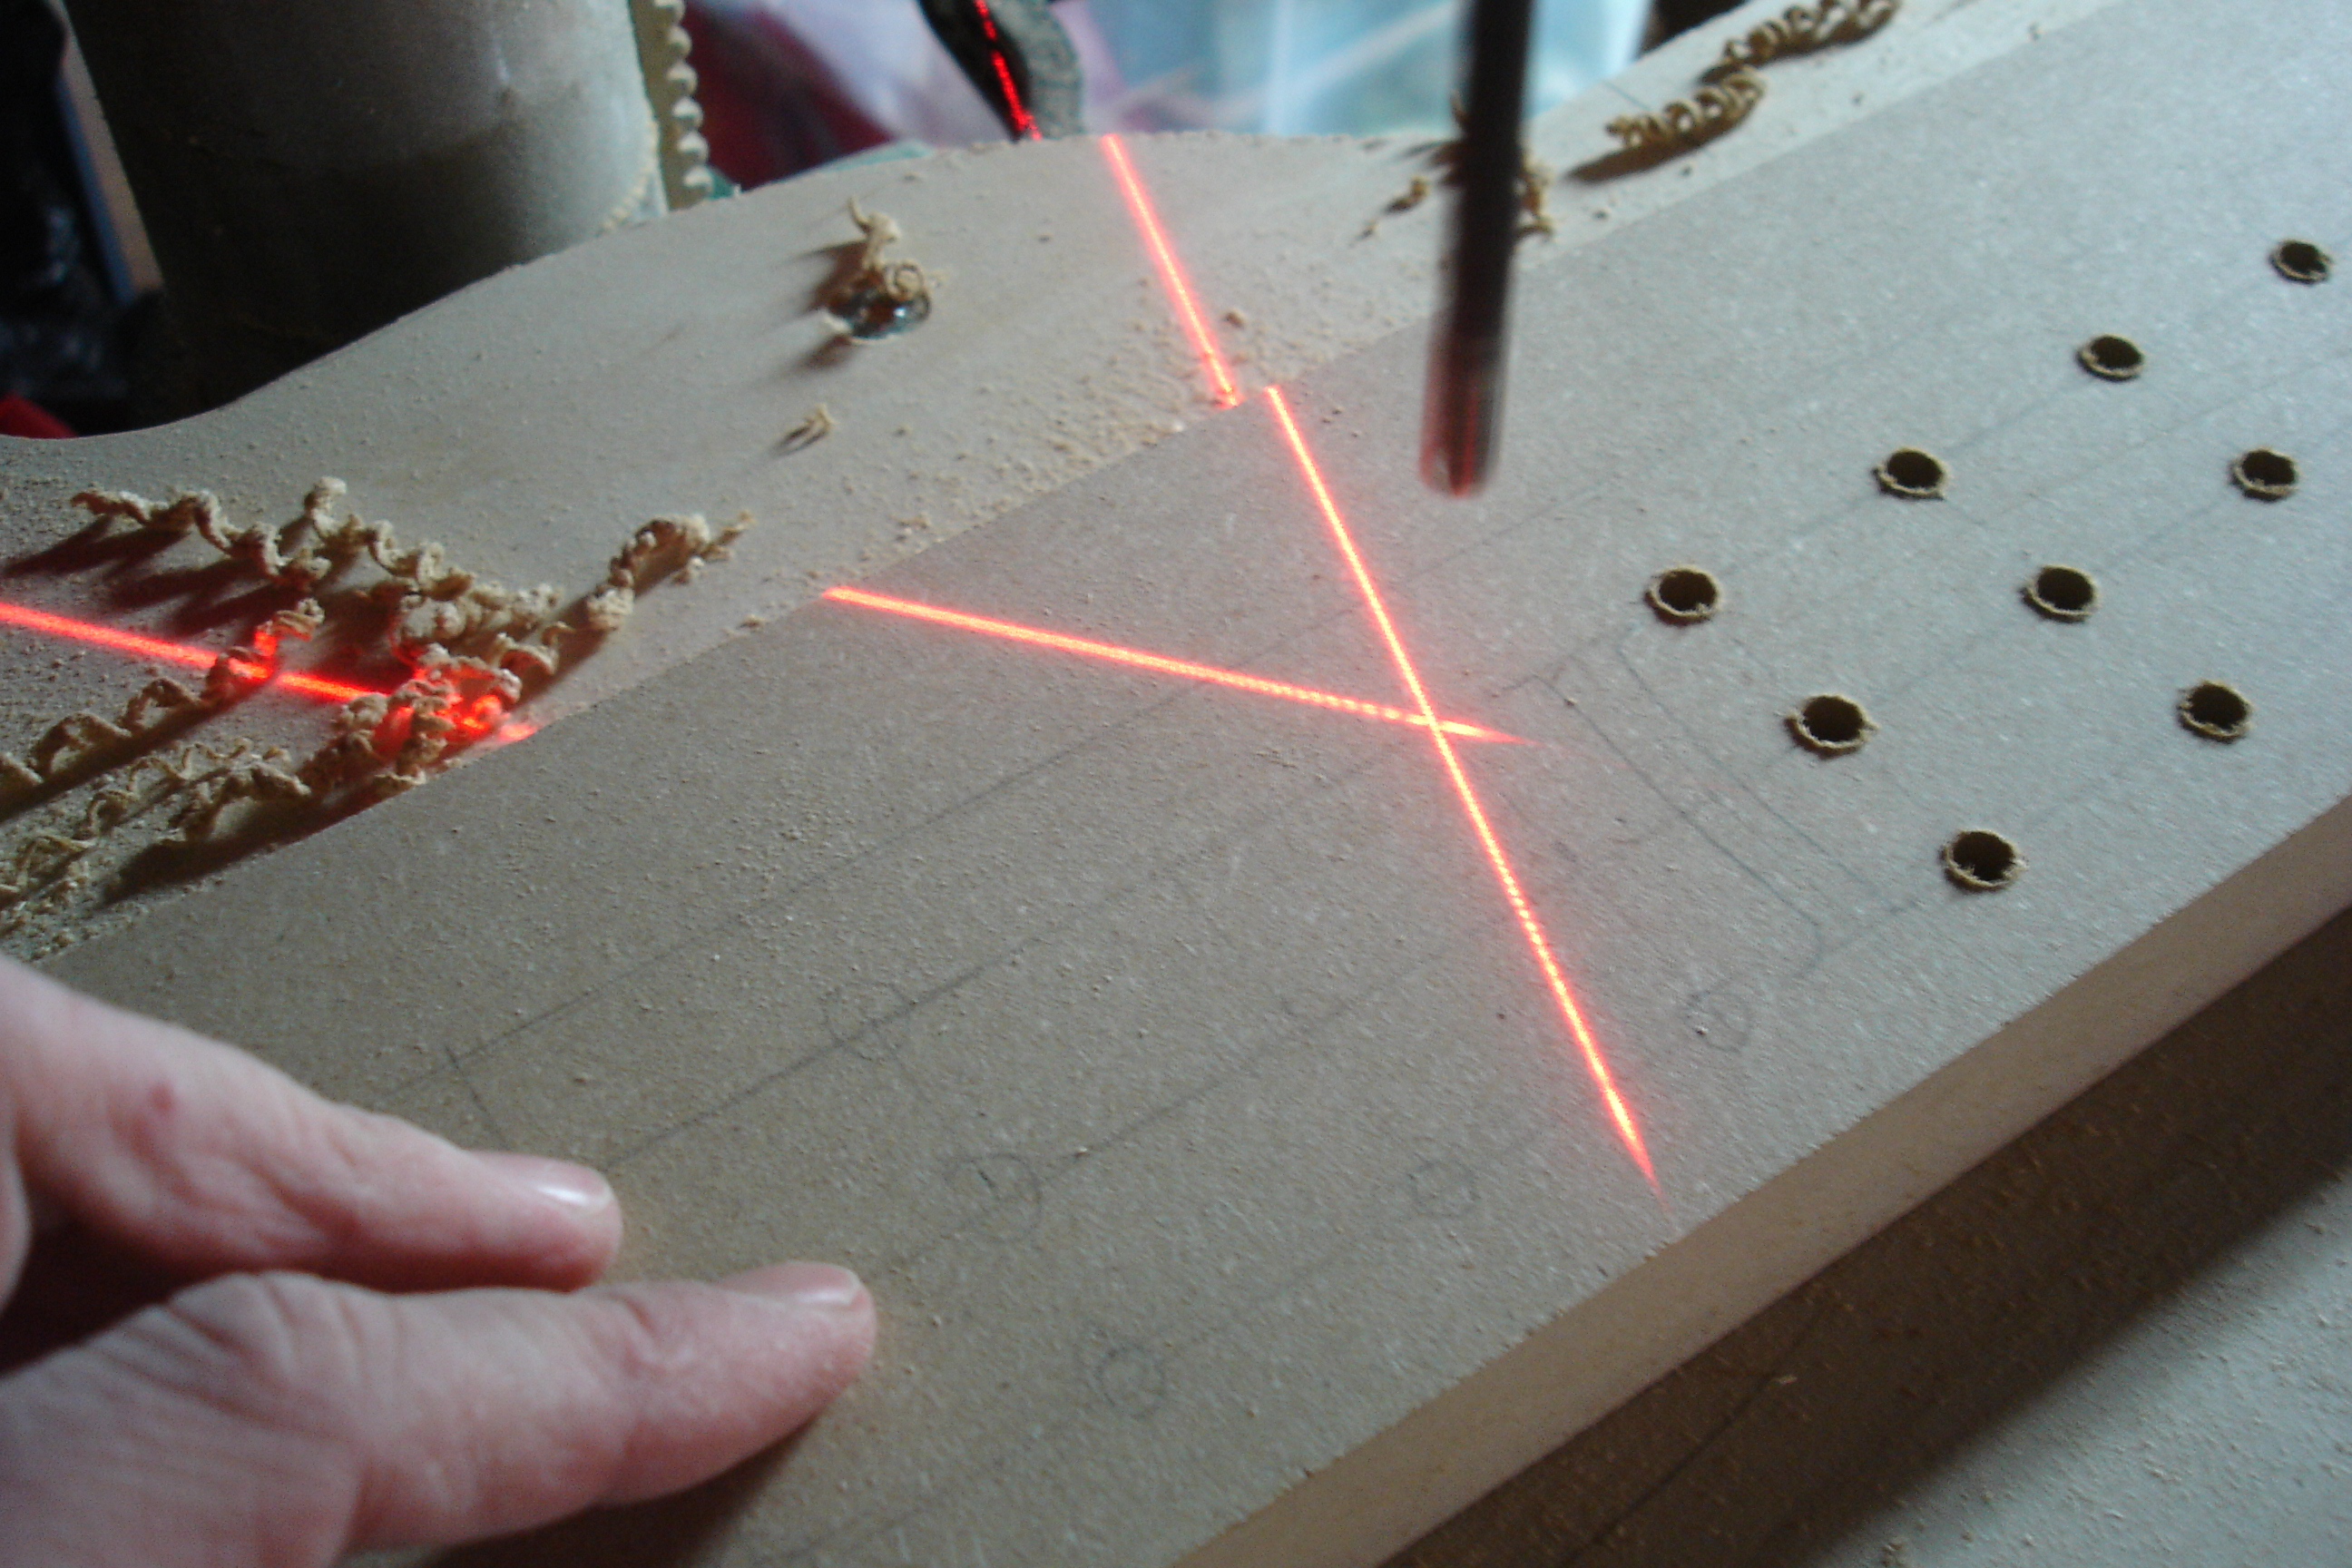 The laser cross is very helpful when it comes to drilling many holes fast - it indicates exactly where the center of the drill bit will cut into the wood.